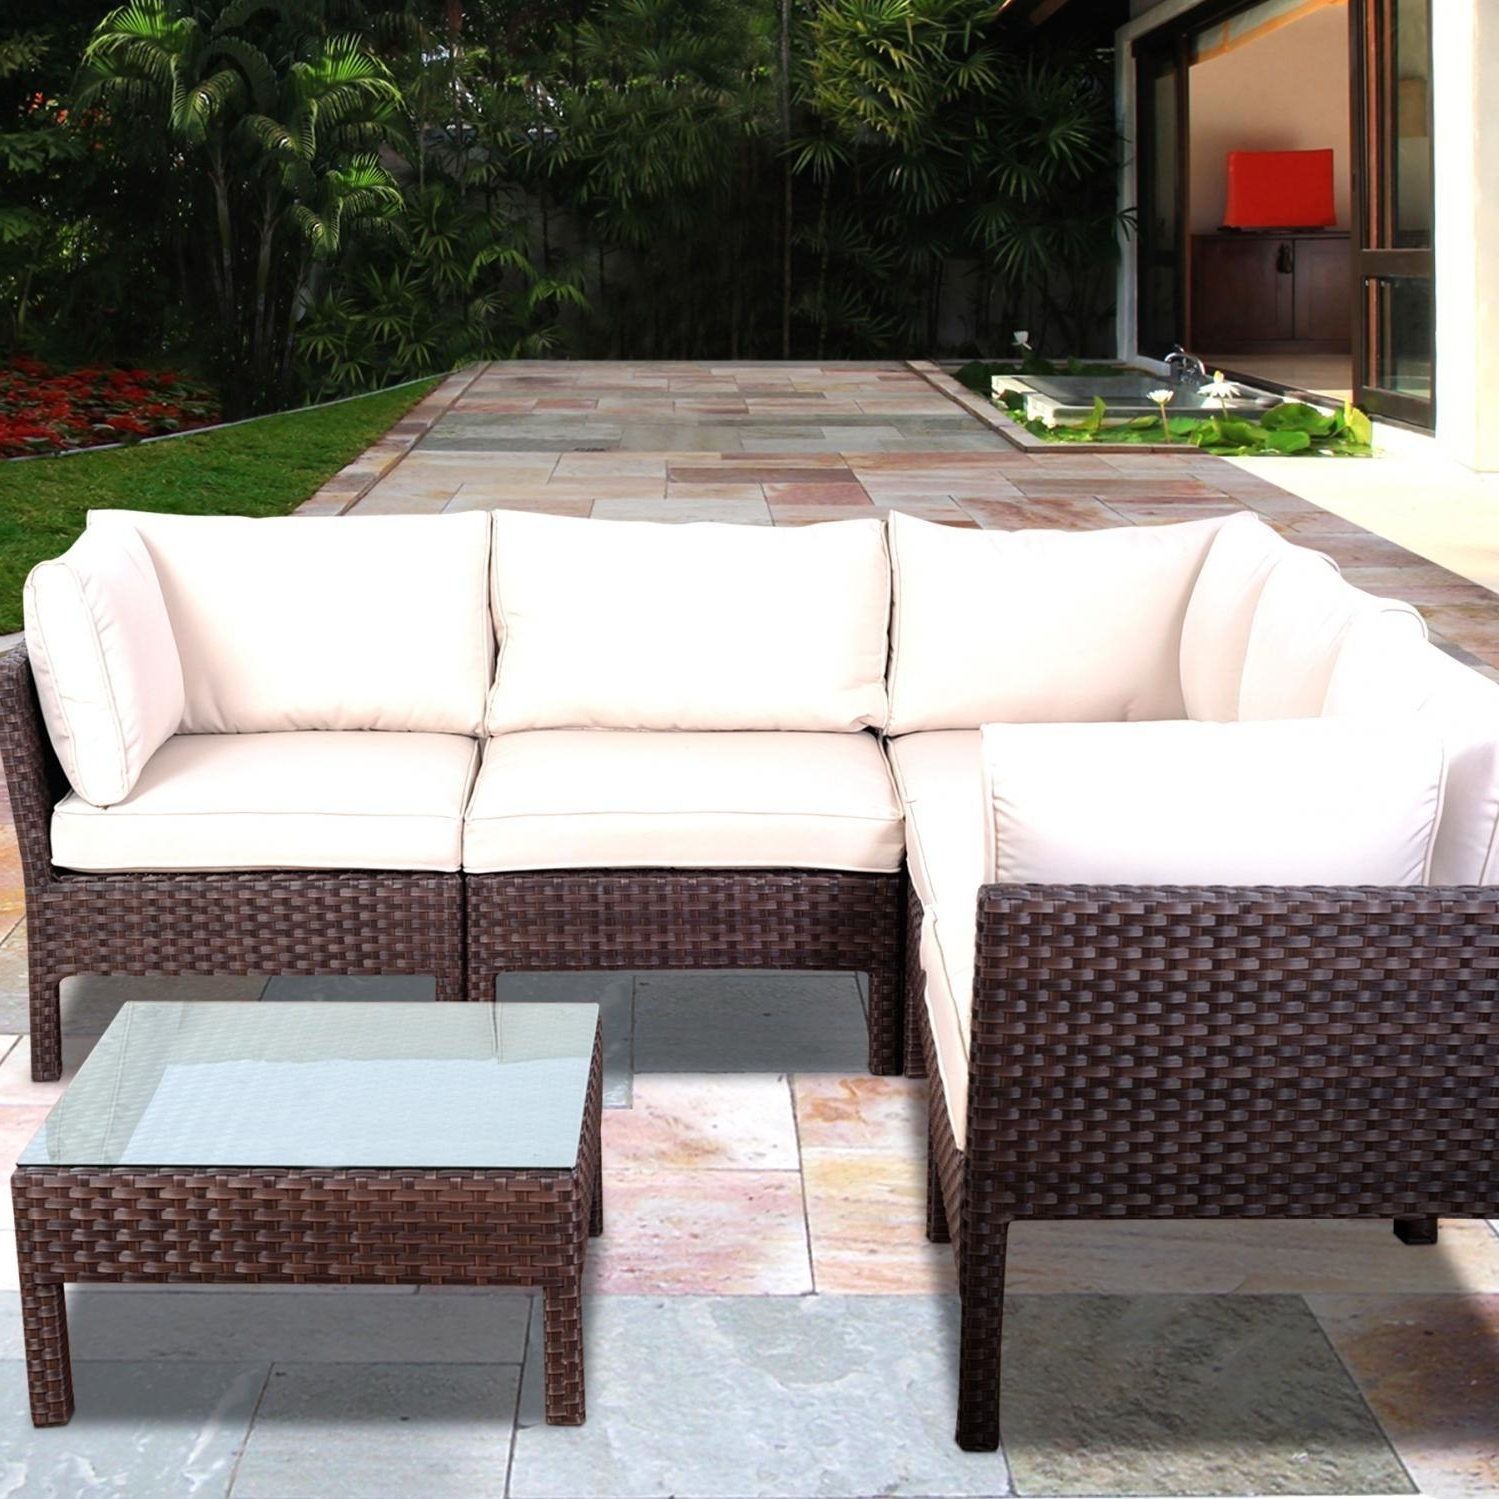 Conversation Patio Sets With Outdoor Sectionals In Widely Used Atlantic Infinity 5 Person Resin Wicker Patio Sectional Set (View 6 of 20)